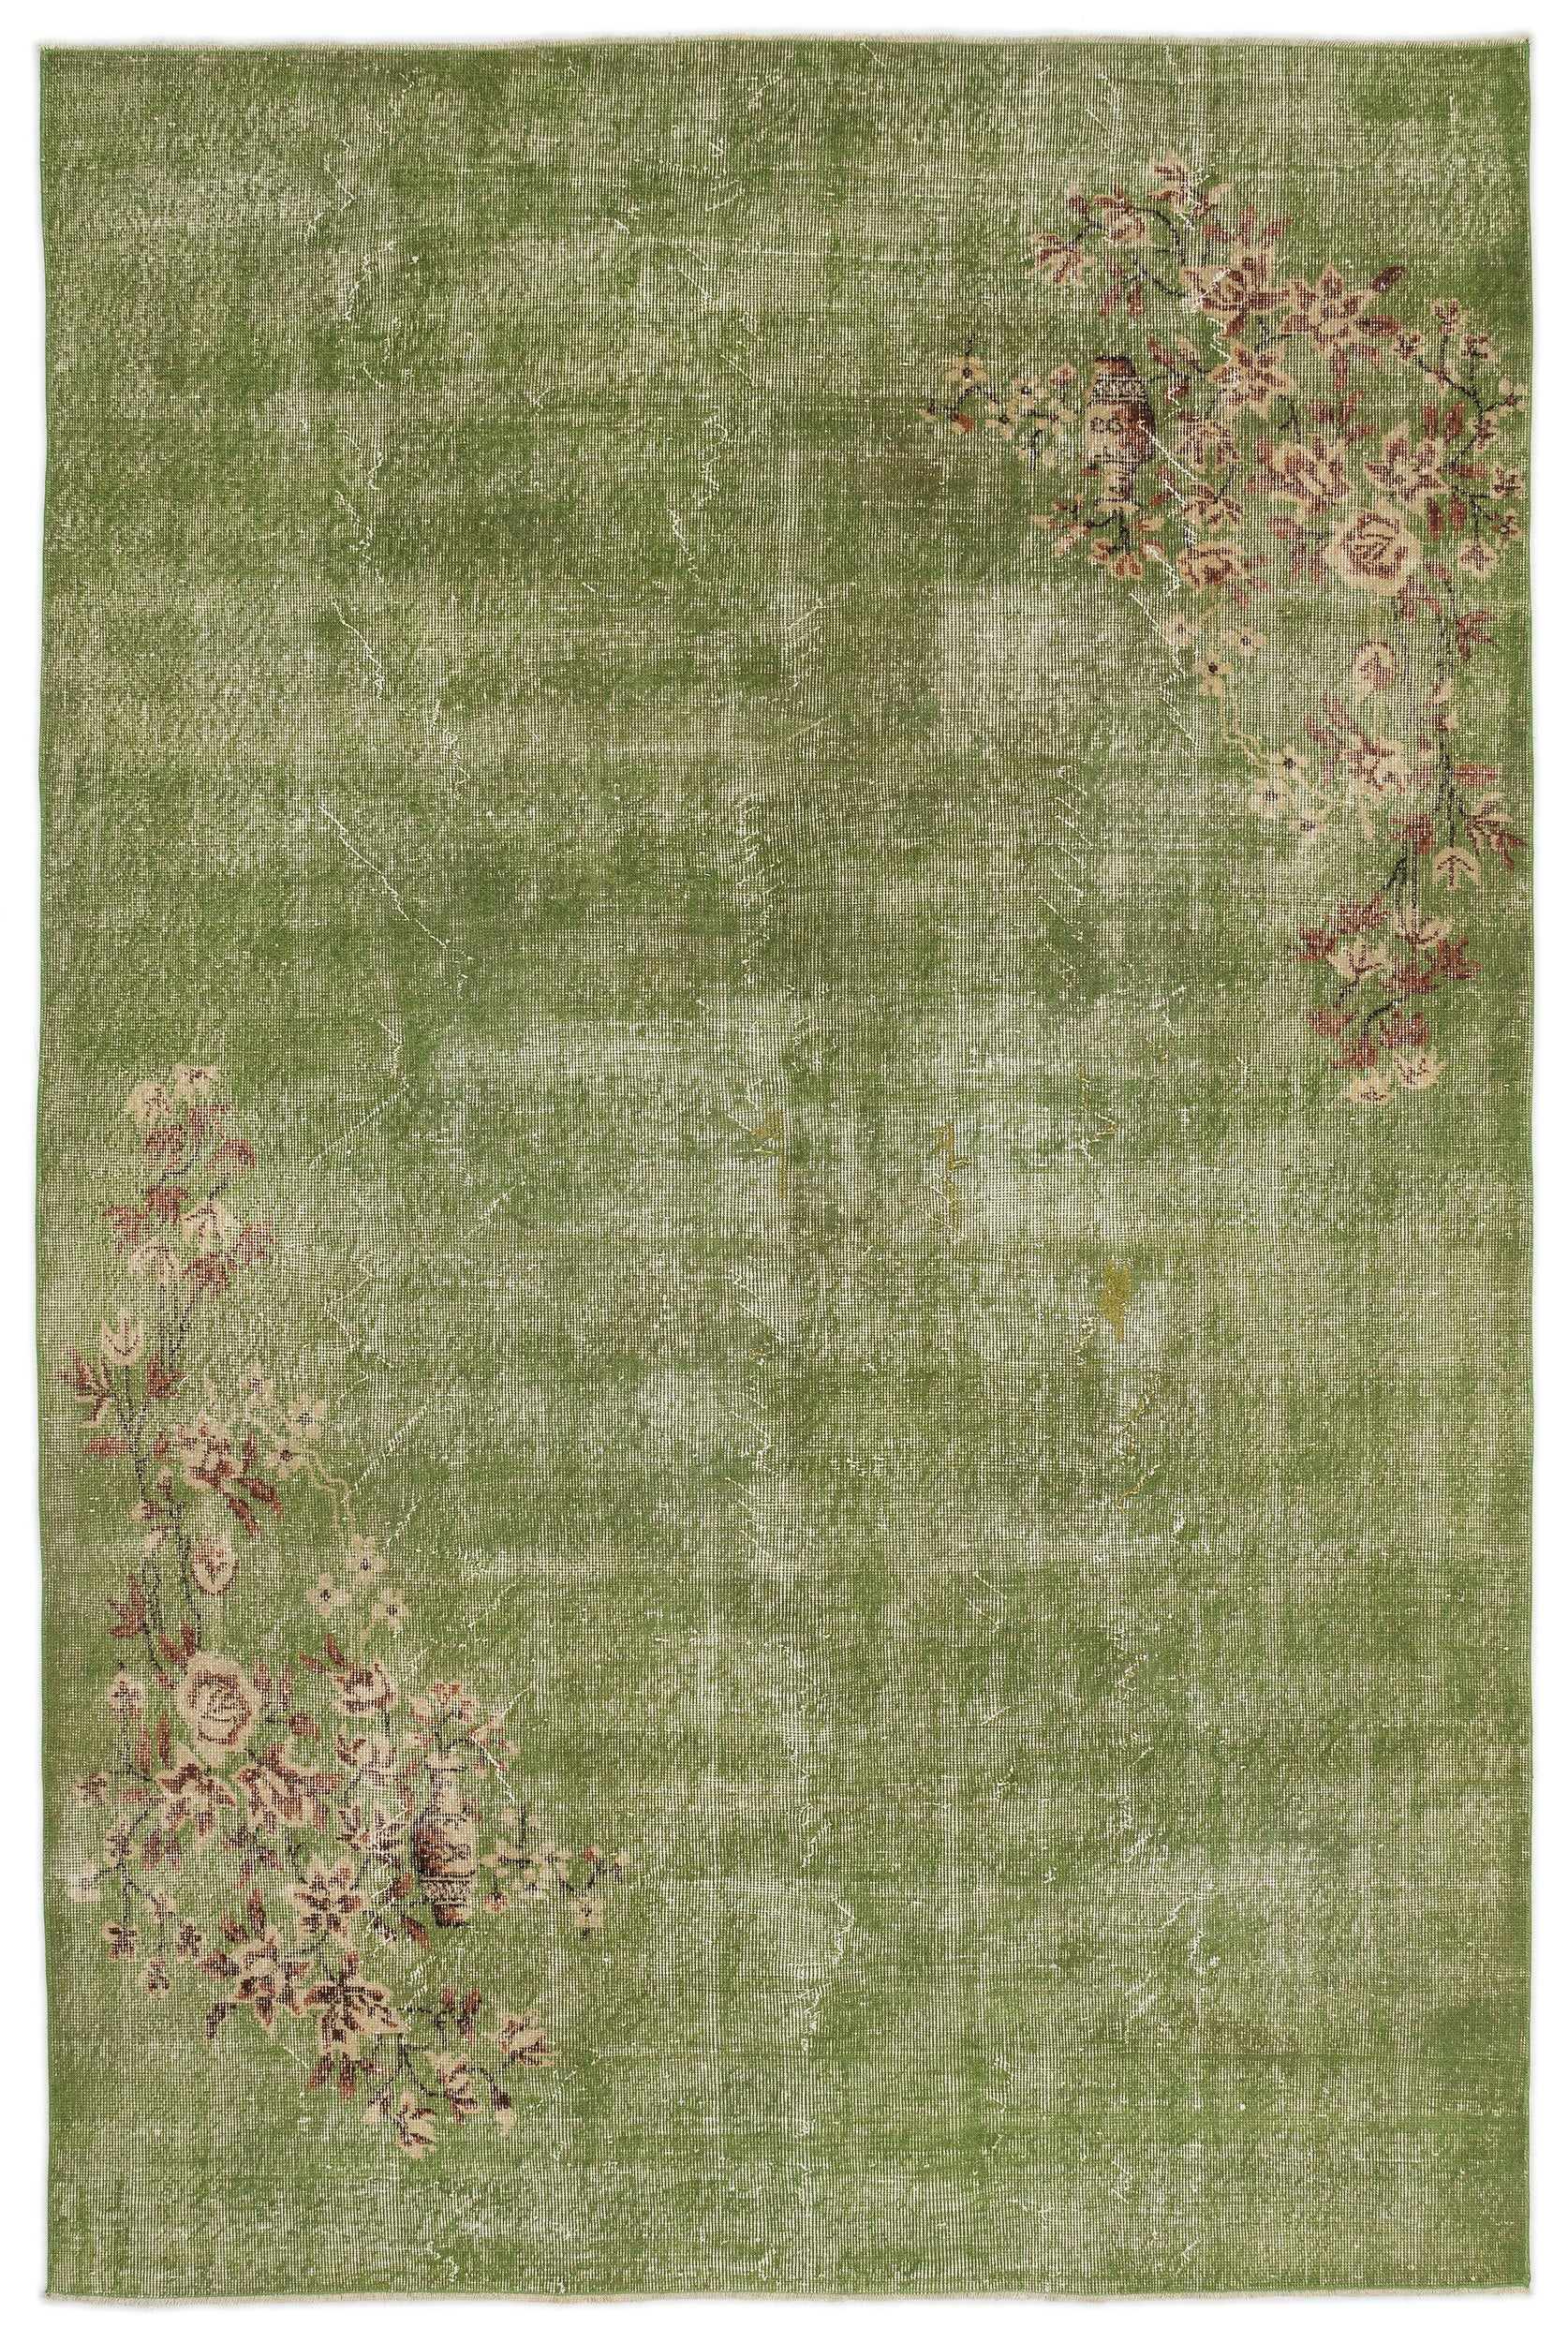 Green Over Dyed Vintage Rug 6'5'' x 9'10'' ft 196 x 300 cm